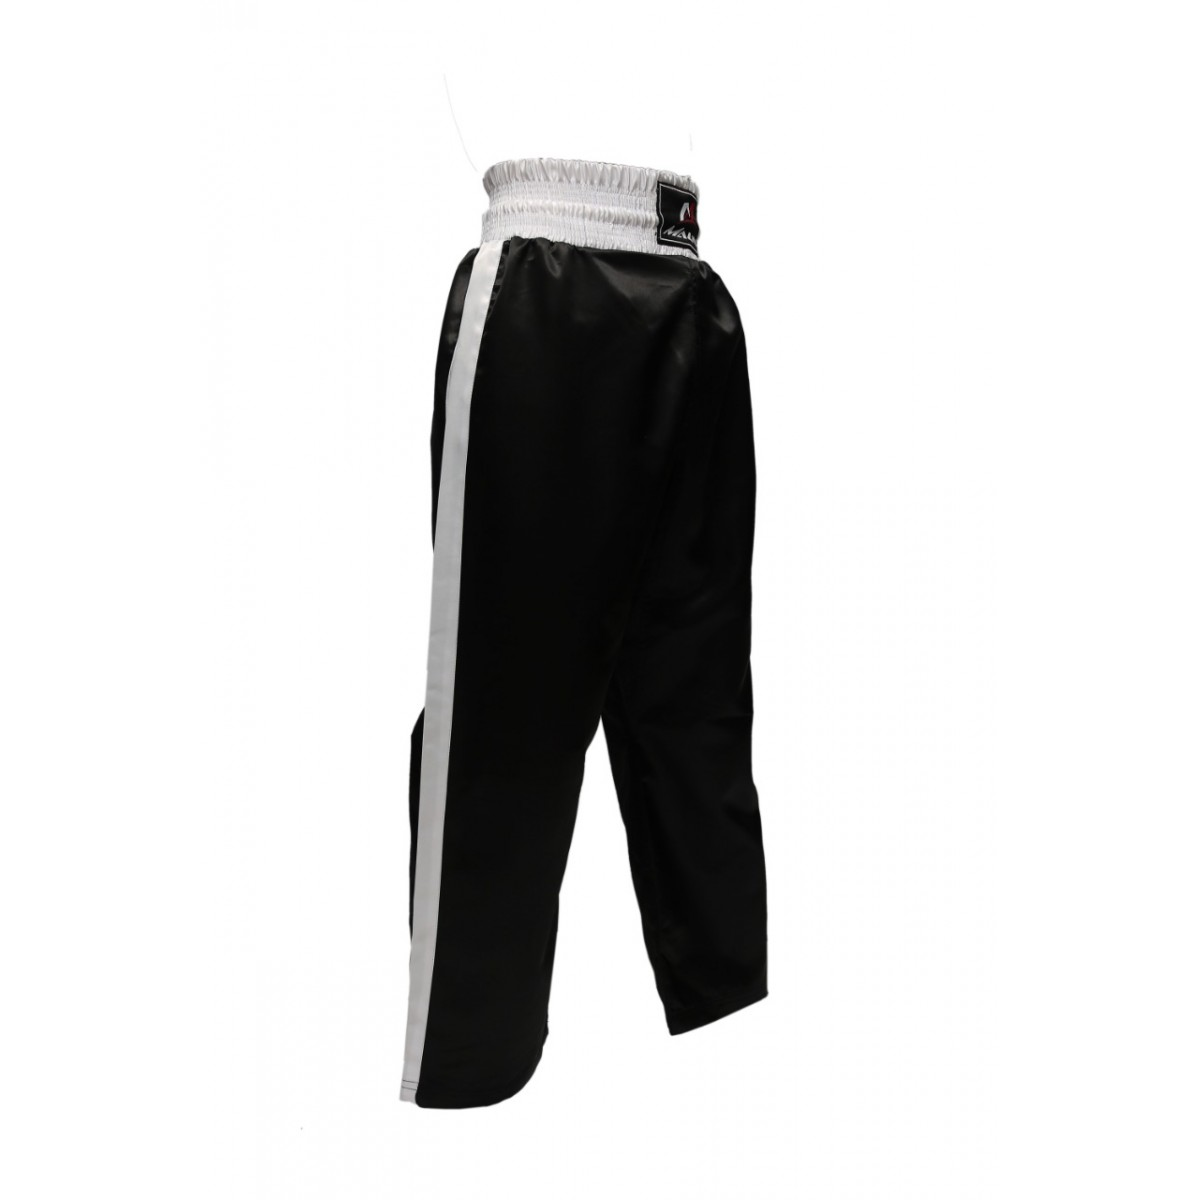 Malino Shine Kickboxing Trouser Mix Martial Arts Training Silk Satin Trouser Black White